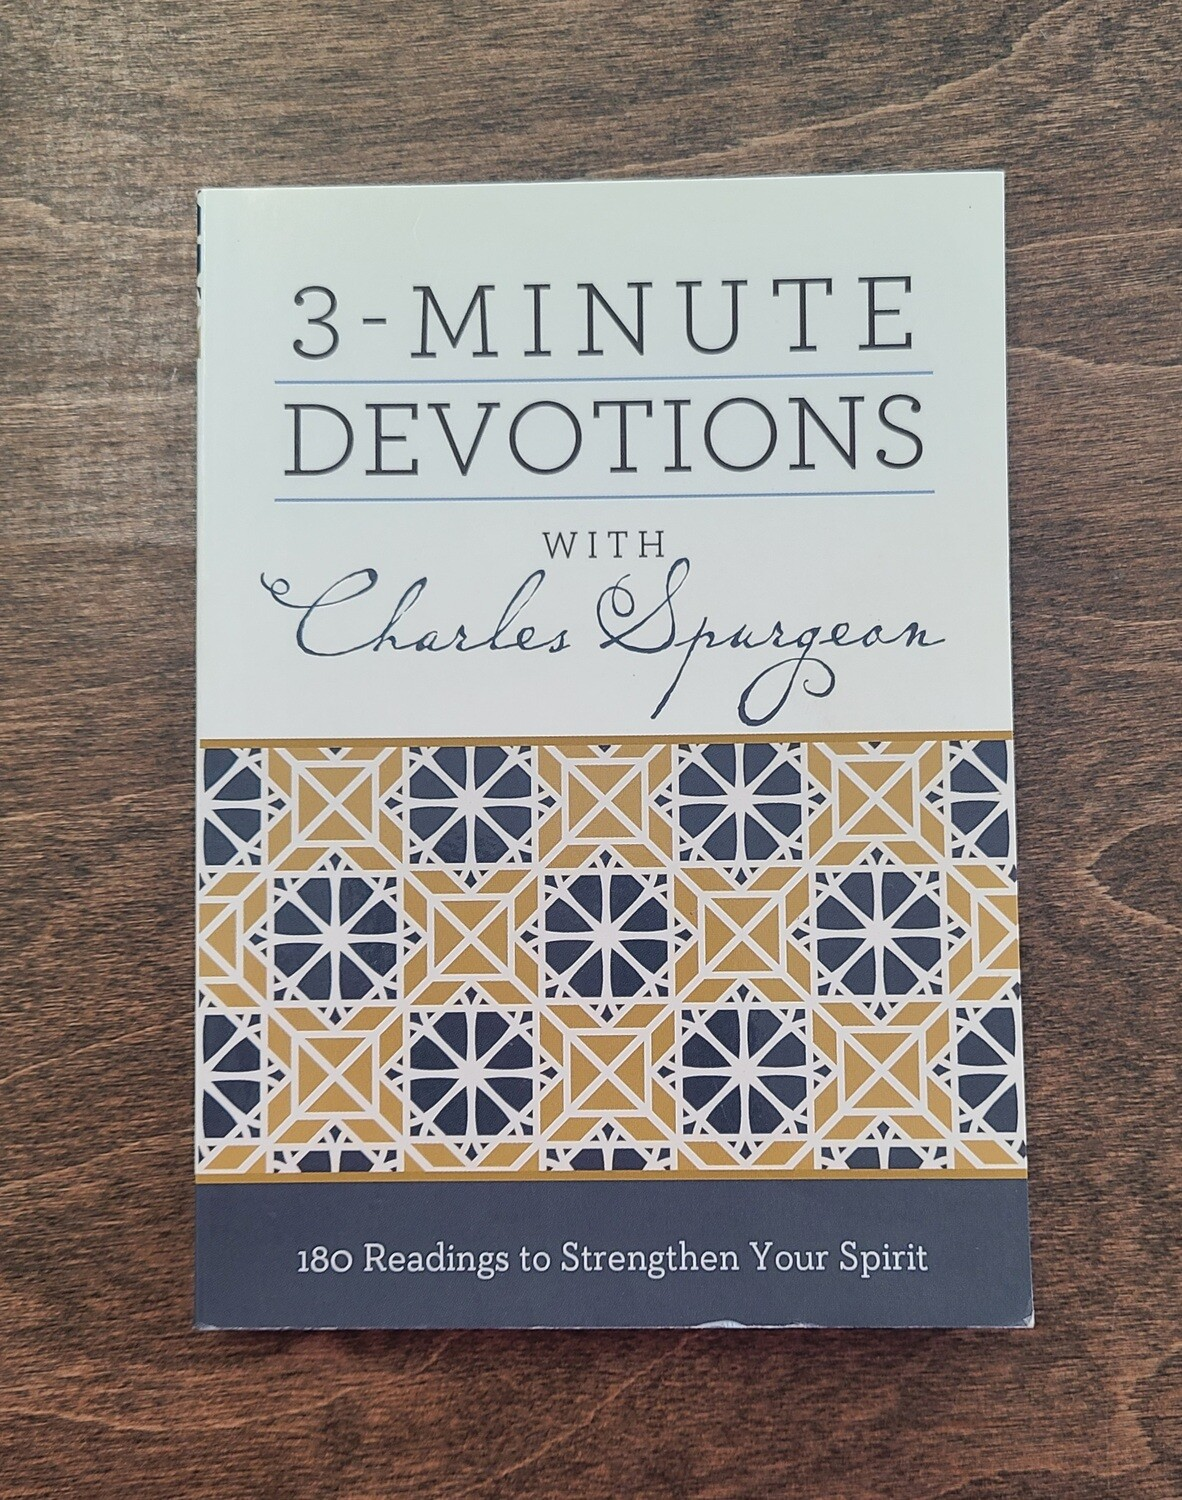 3-Minute Devotions with Charles Spurgeon by Barbour Publishing, Inc. and Shanna D. Gregor